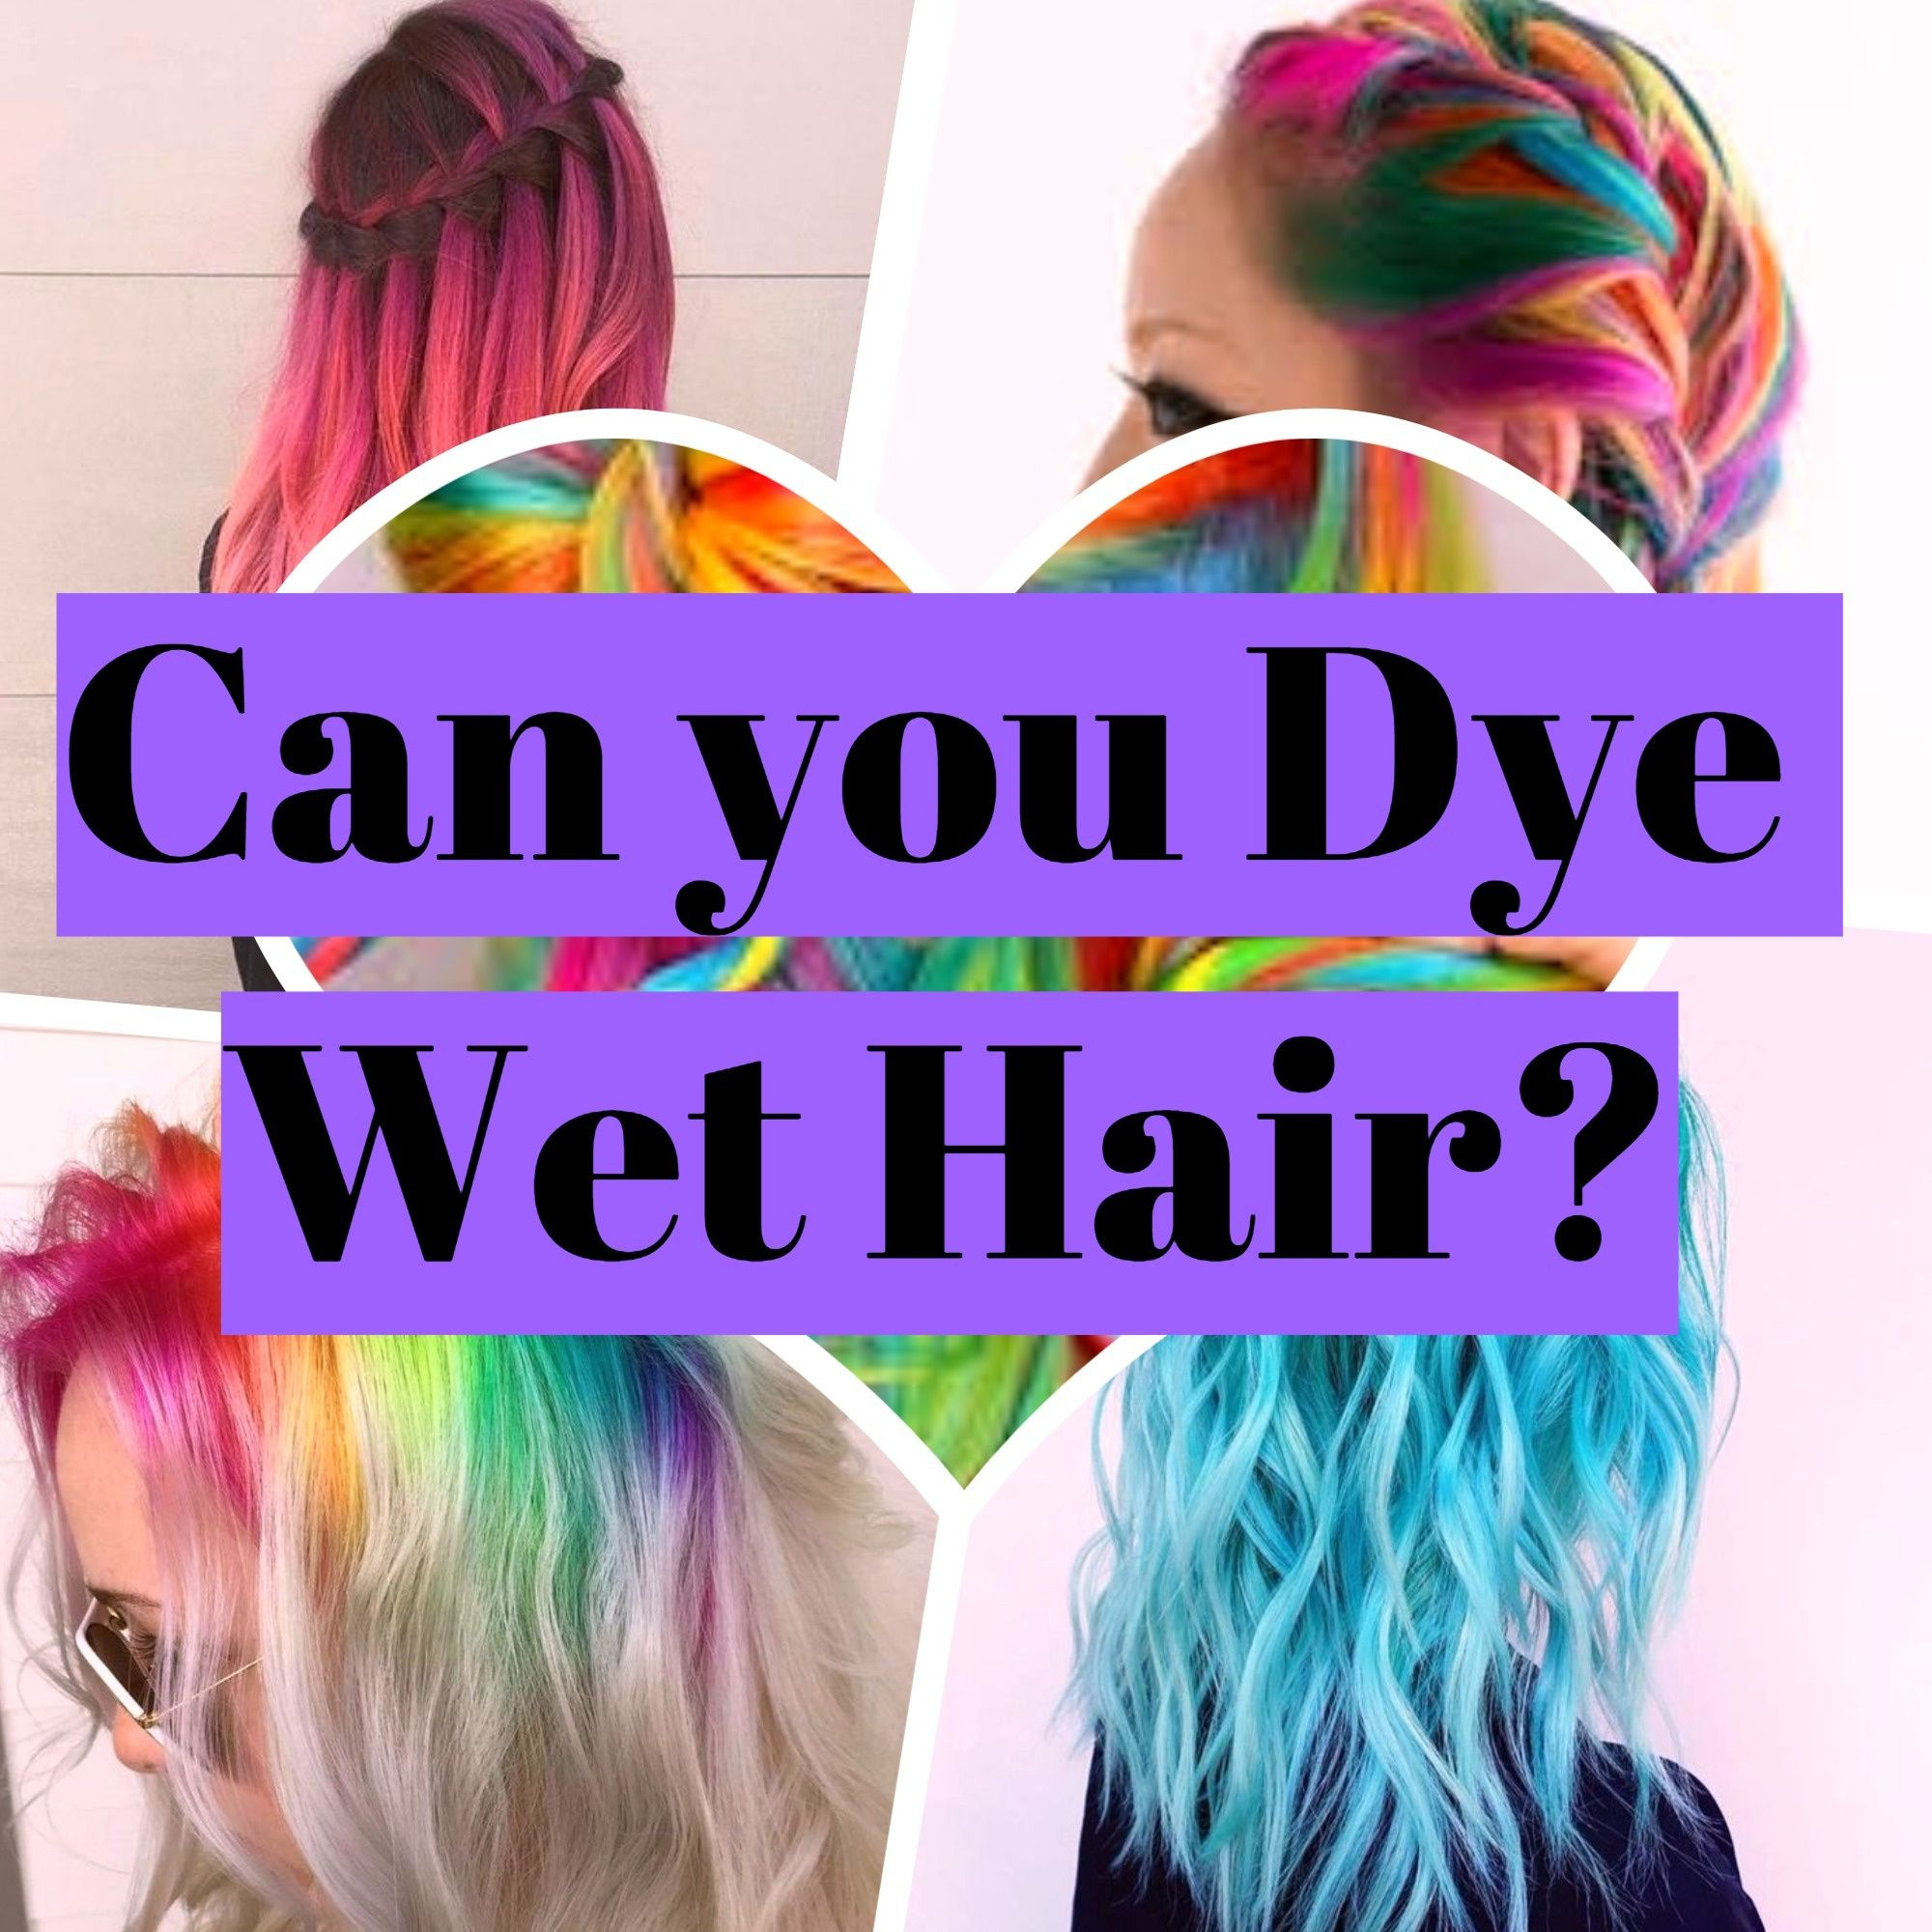 Seven Does Hair Dye Expire Tips You Need To Learn Now Dyed Hair Thin Hair Care Sleeping With Wet Hair